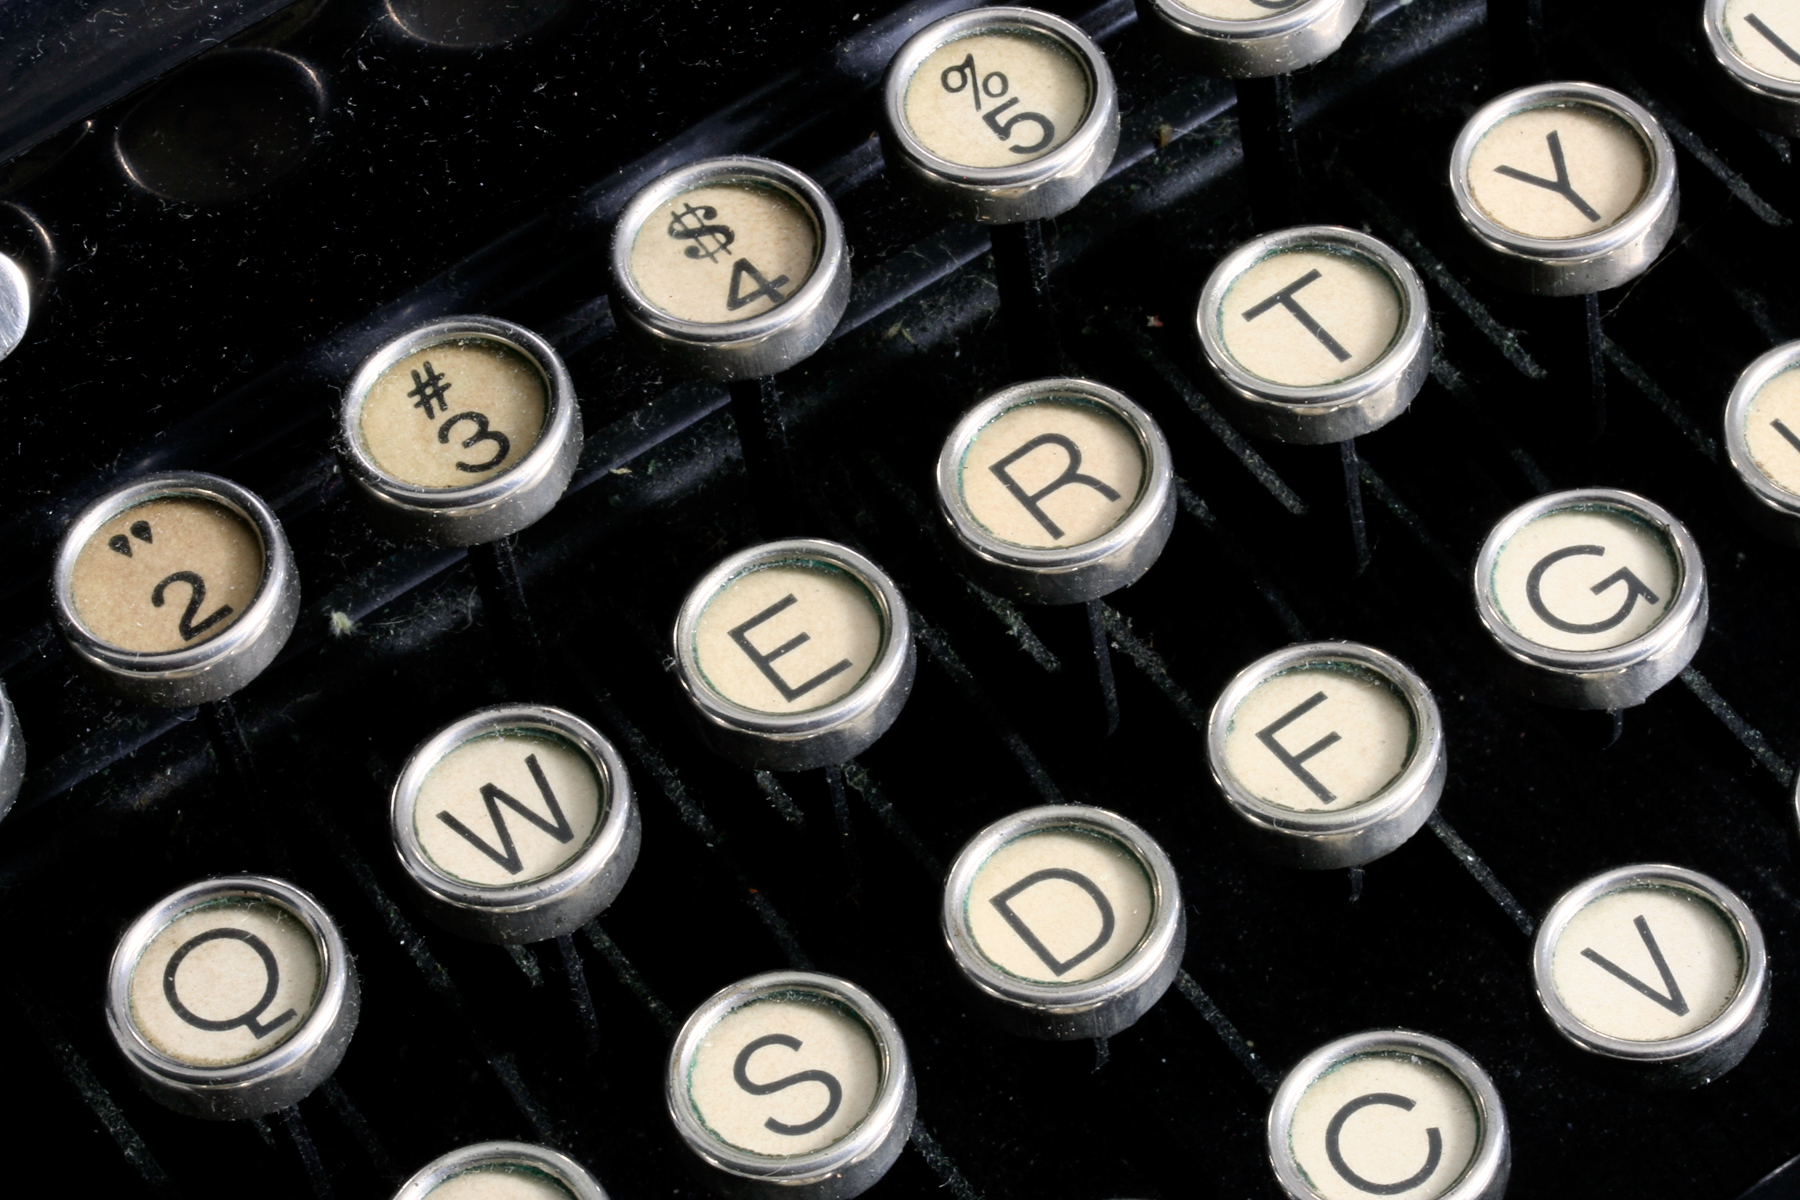 Antique typewriter close-up photo